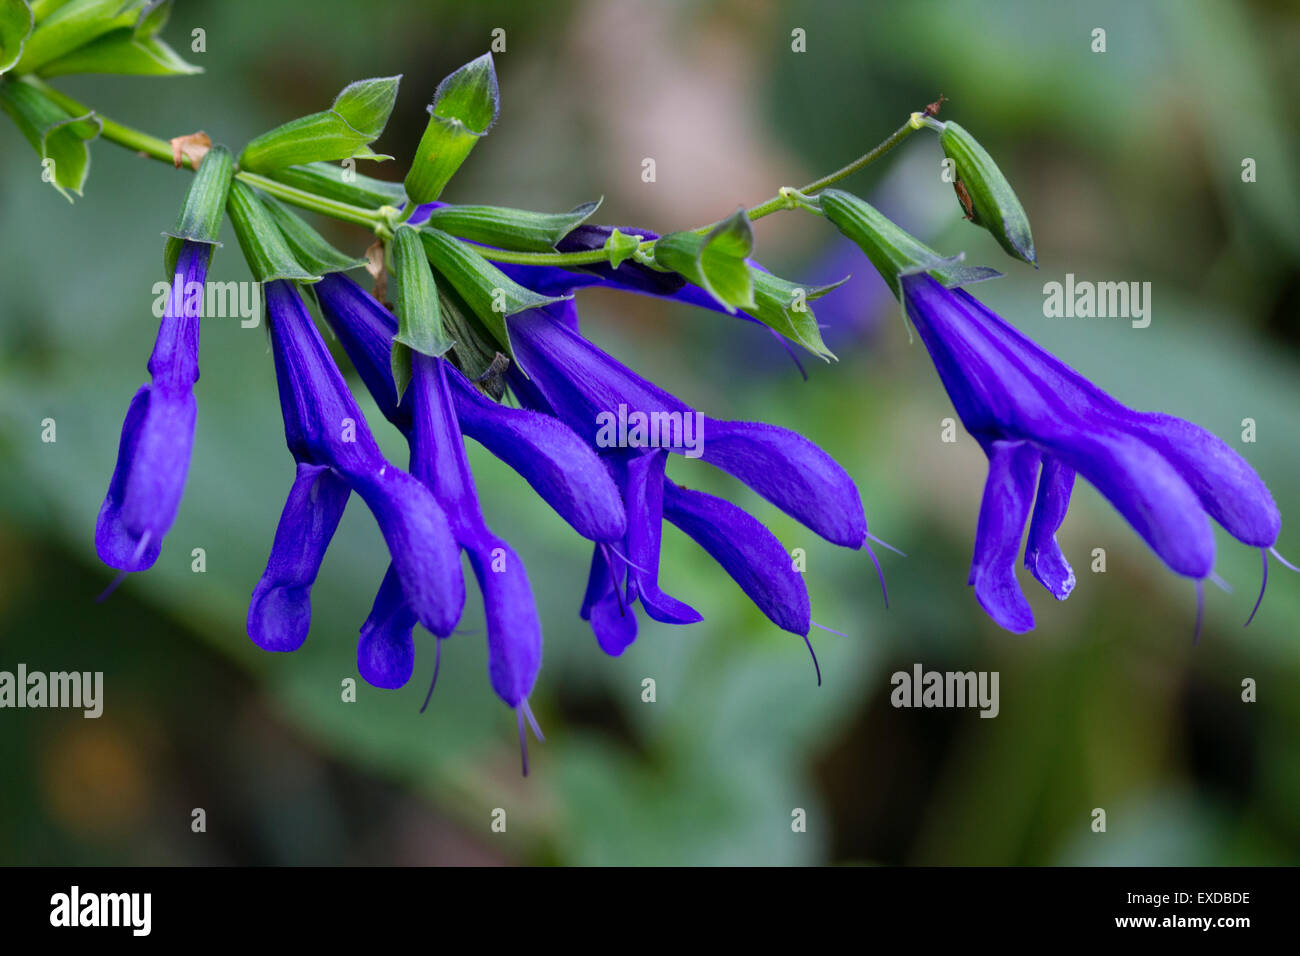 Blue flowers of the summer to autumn blooming perennial sage, Salvia guaranitica 'Blue Enigma' - Stock Image